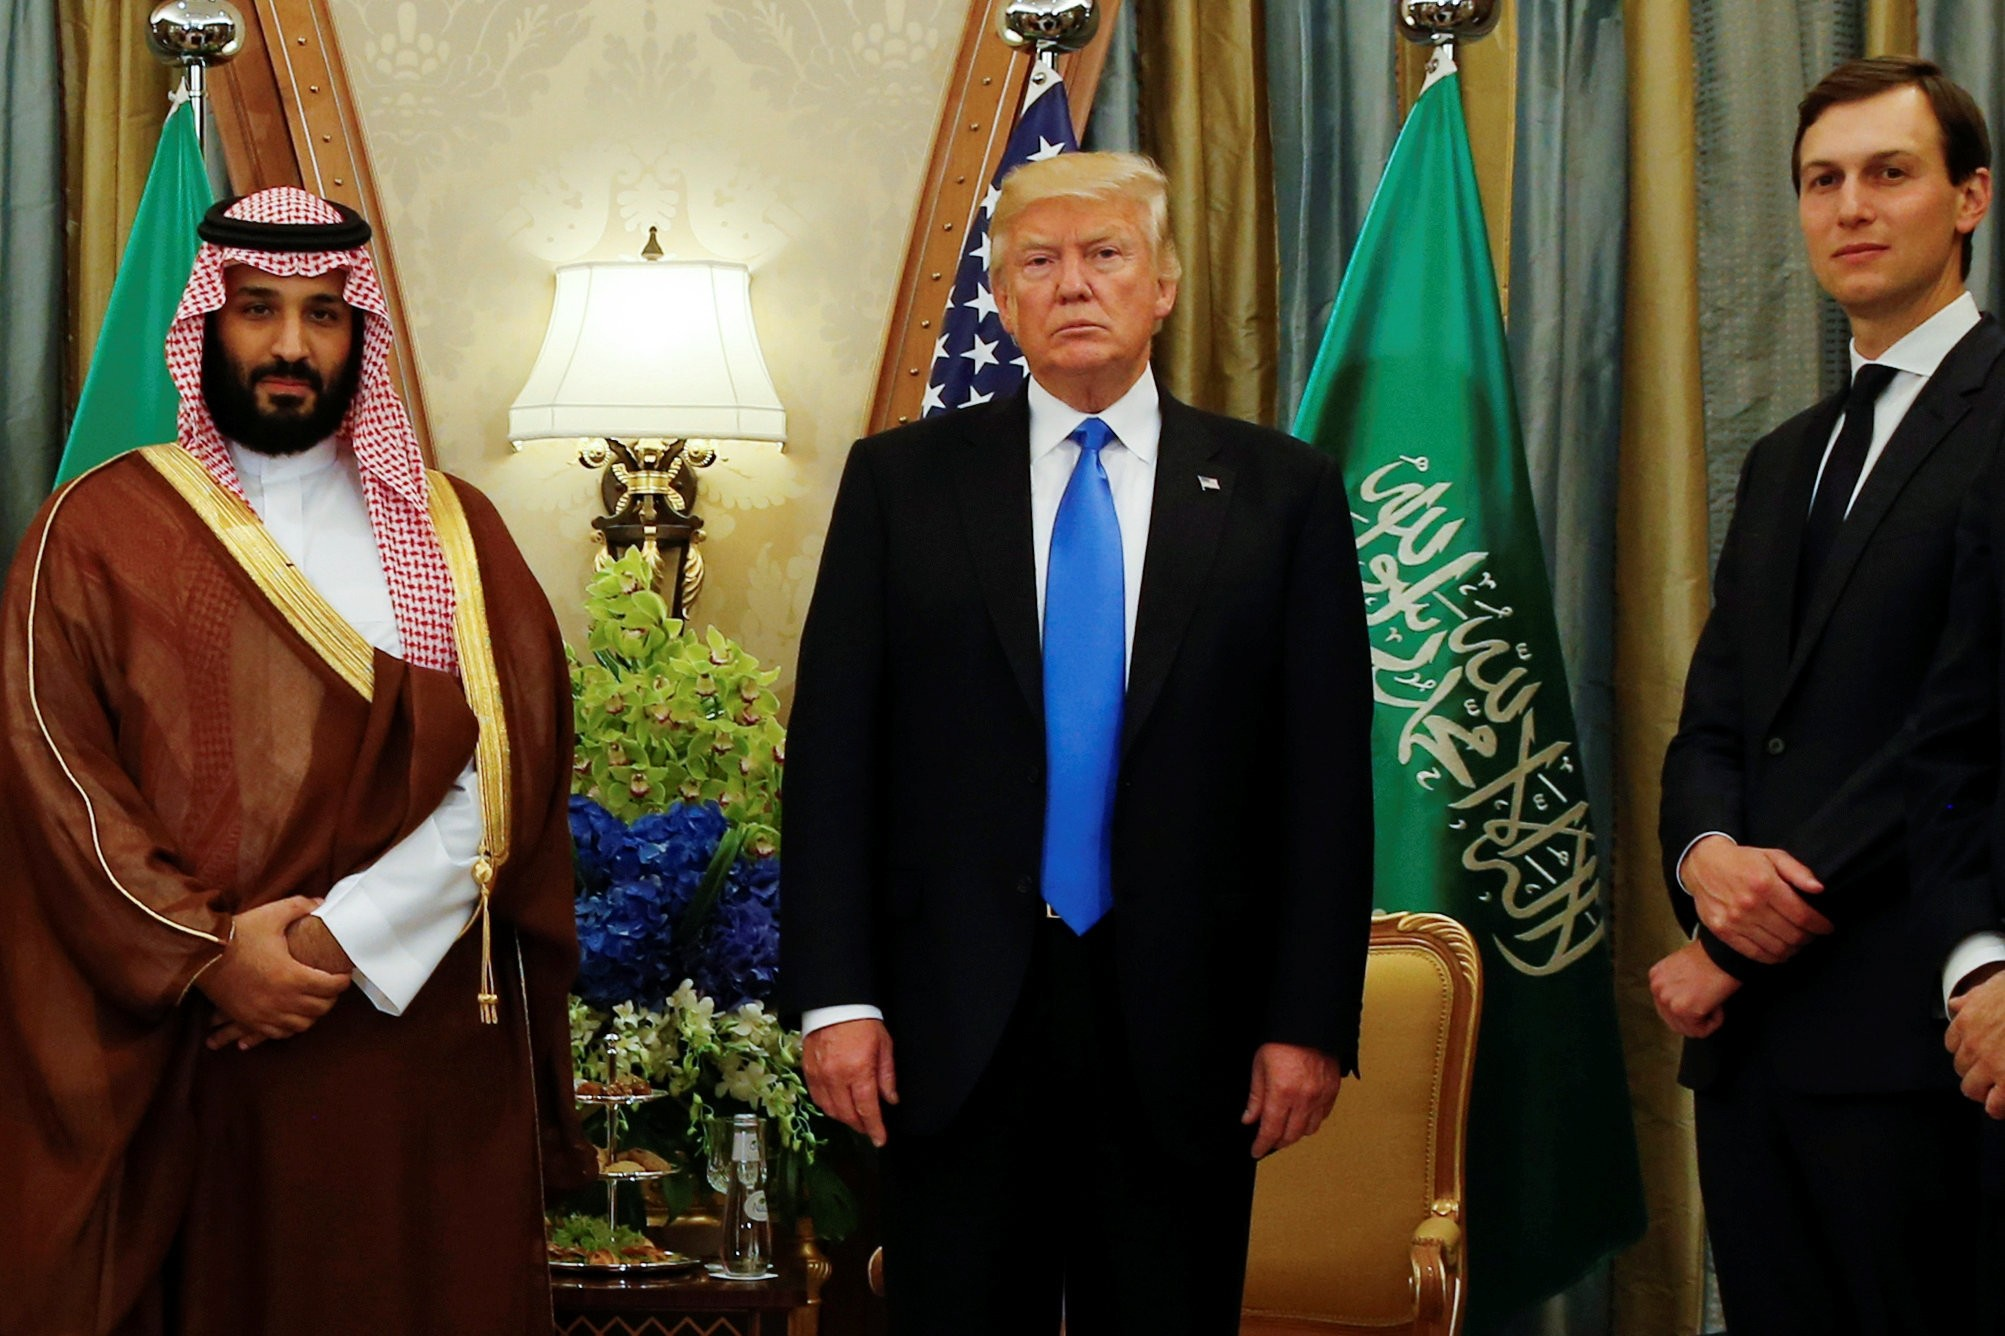 U.S. President Donald Trump (C), flanked by his senior adviser and son-in-law Jared Kushner (R), meets with Saudi Arabia's Crown Prince Mohammed bin Salman (L) at the Ritz Carlton hotel in Riyadh, Saudi Arabia, May 20, 2017.